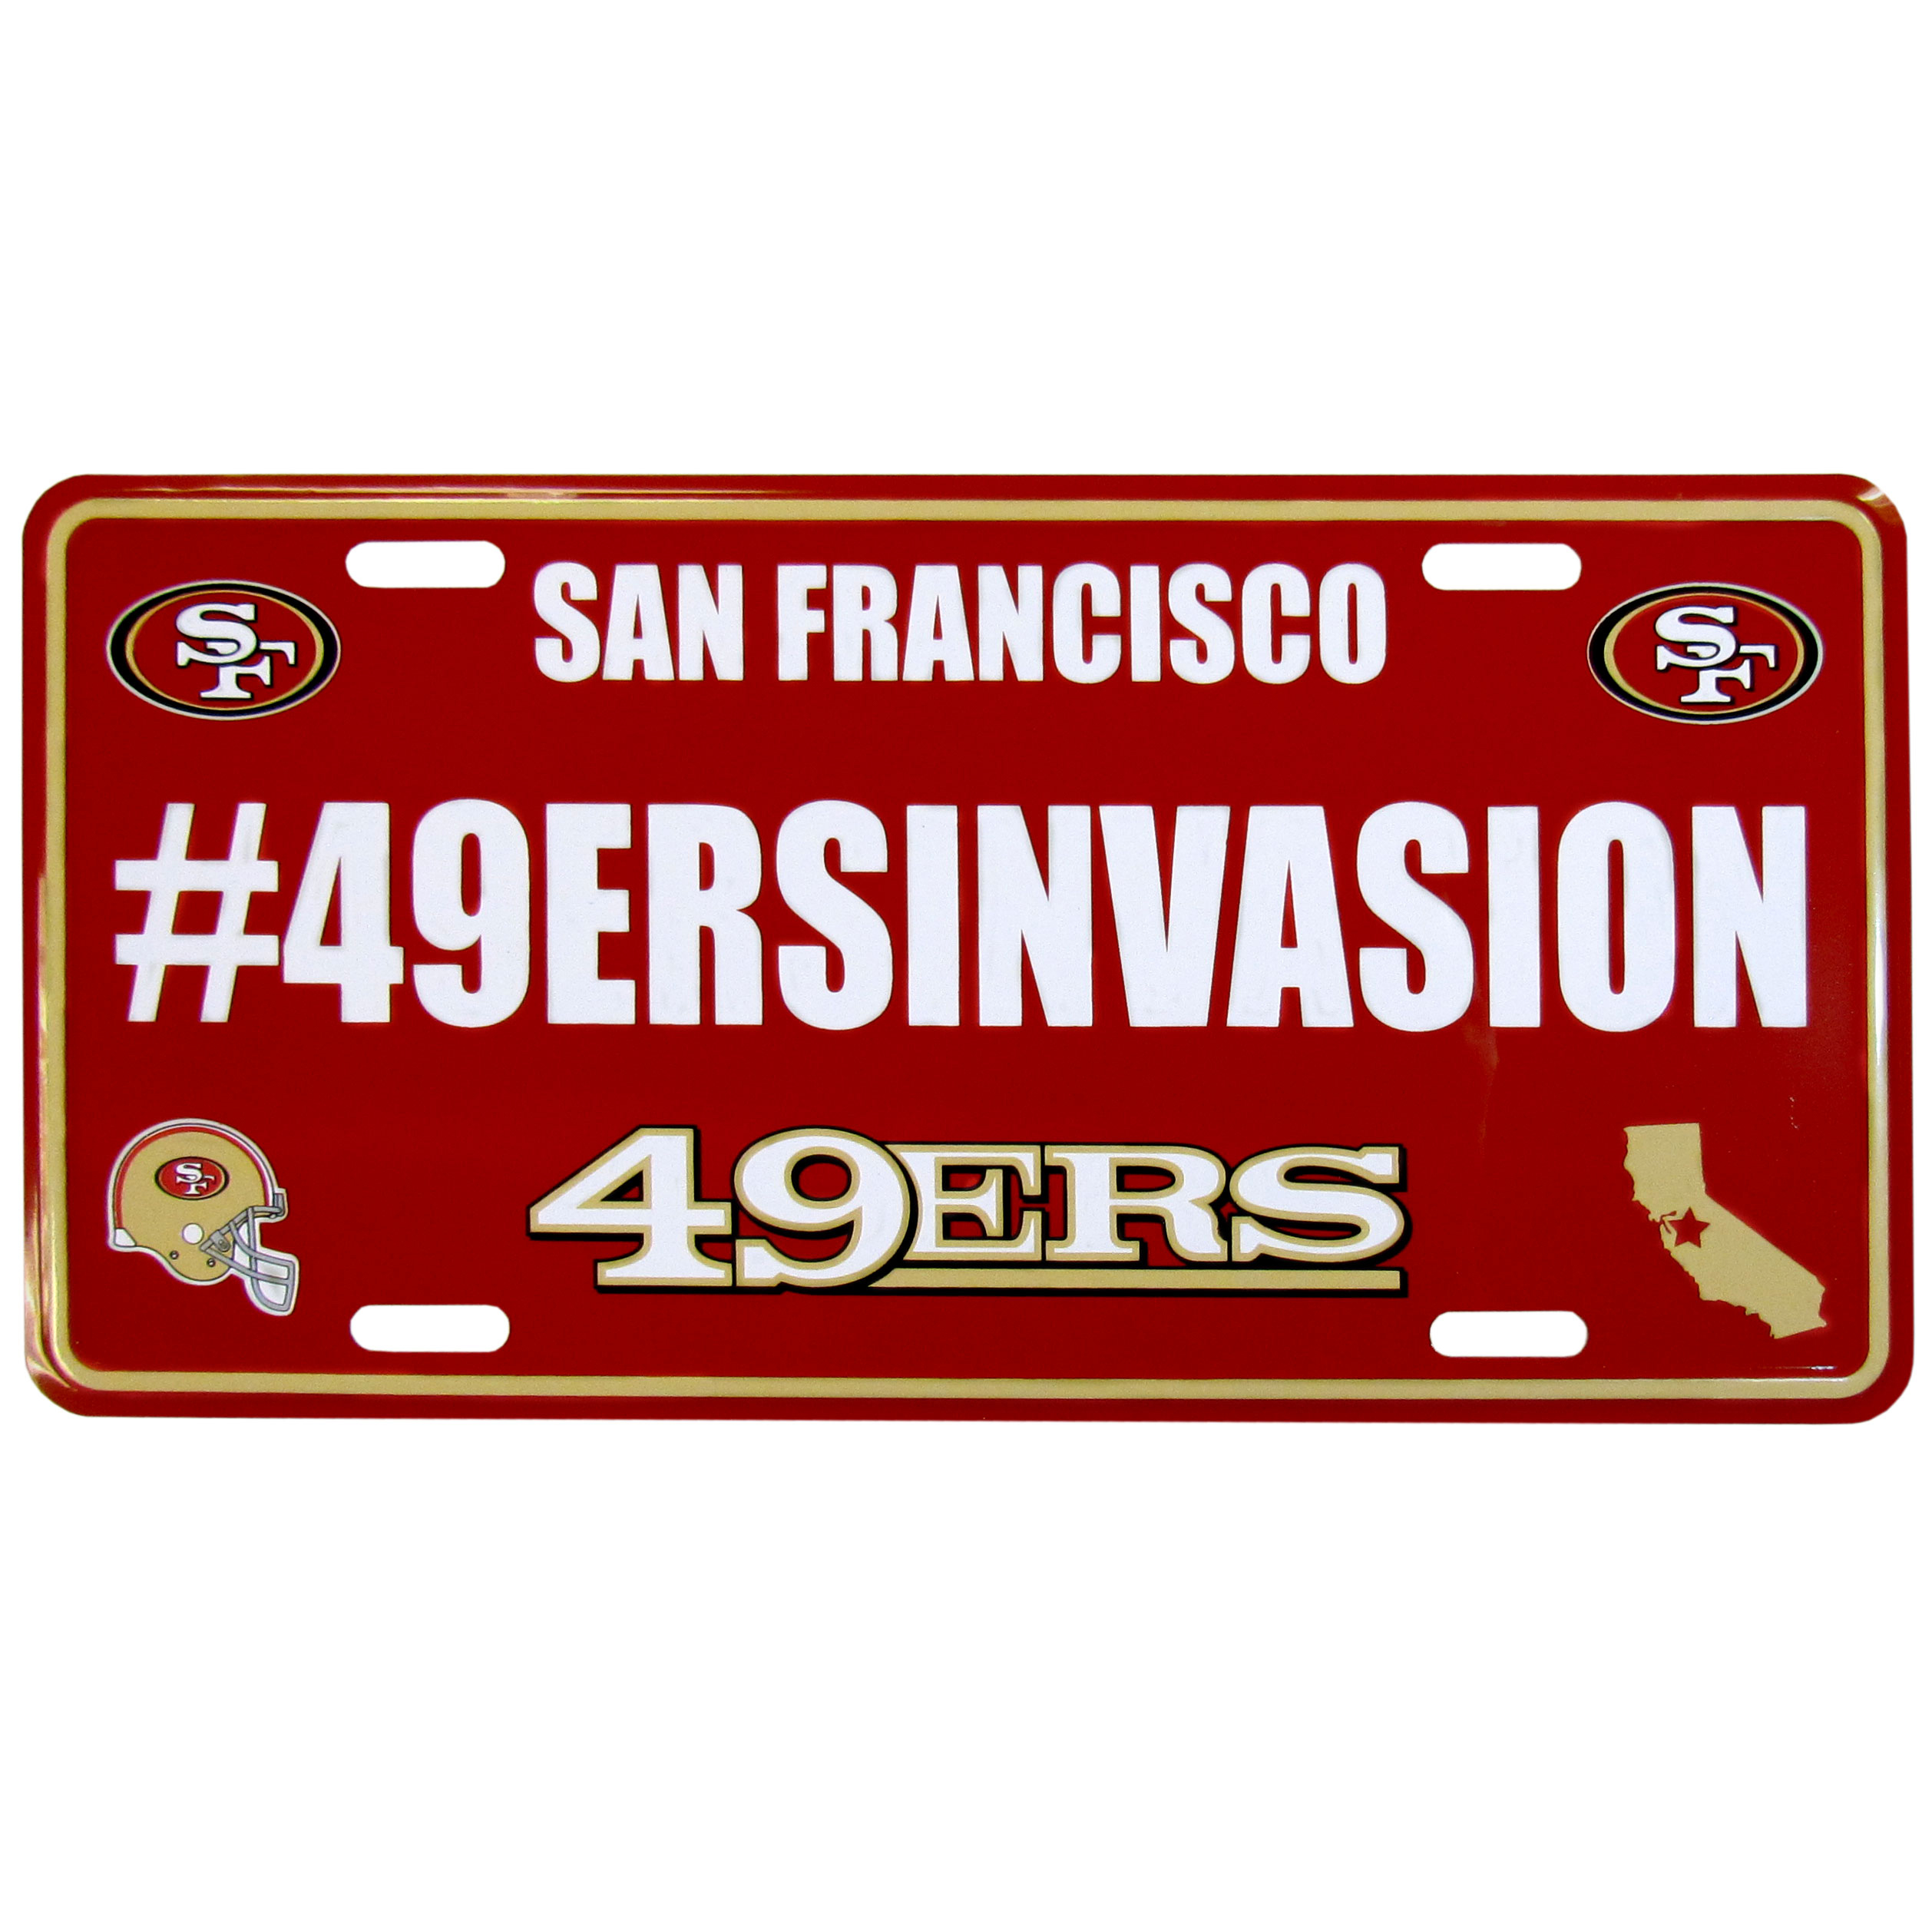 San Francisco 49ers Hashtag License Plate - It's a hashtag world! Celebrate the San Francisco 49ers with this stamped aluminum license plate with the most popular team hashtag! This bright license plate will look great on your vehicle or mounted in your fan cave.